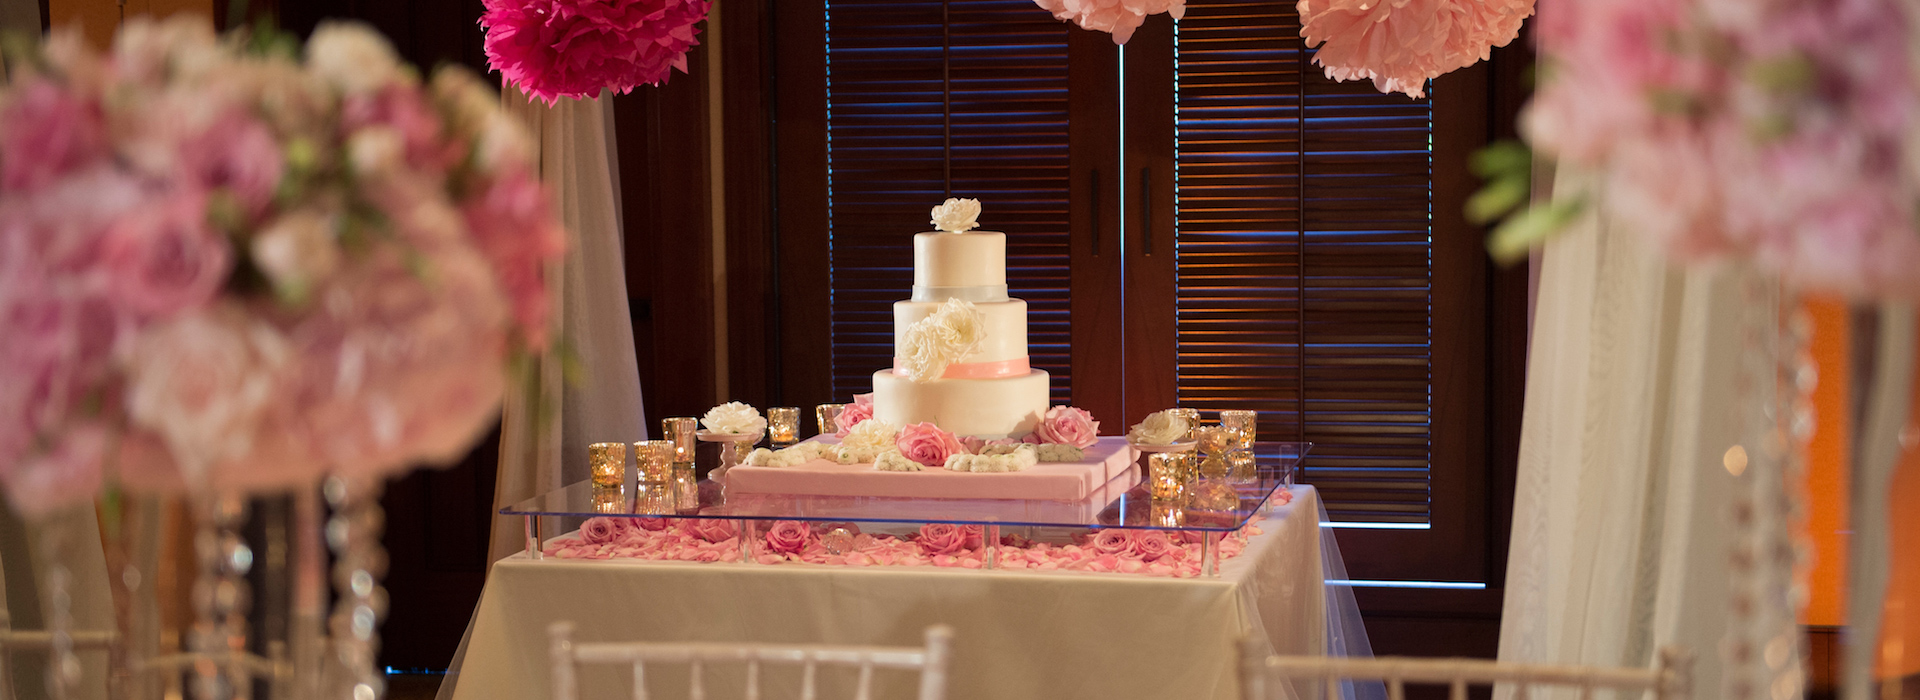 wedding cakes chattanooga tn